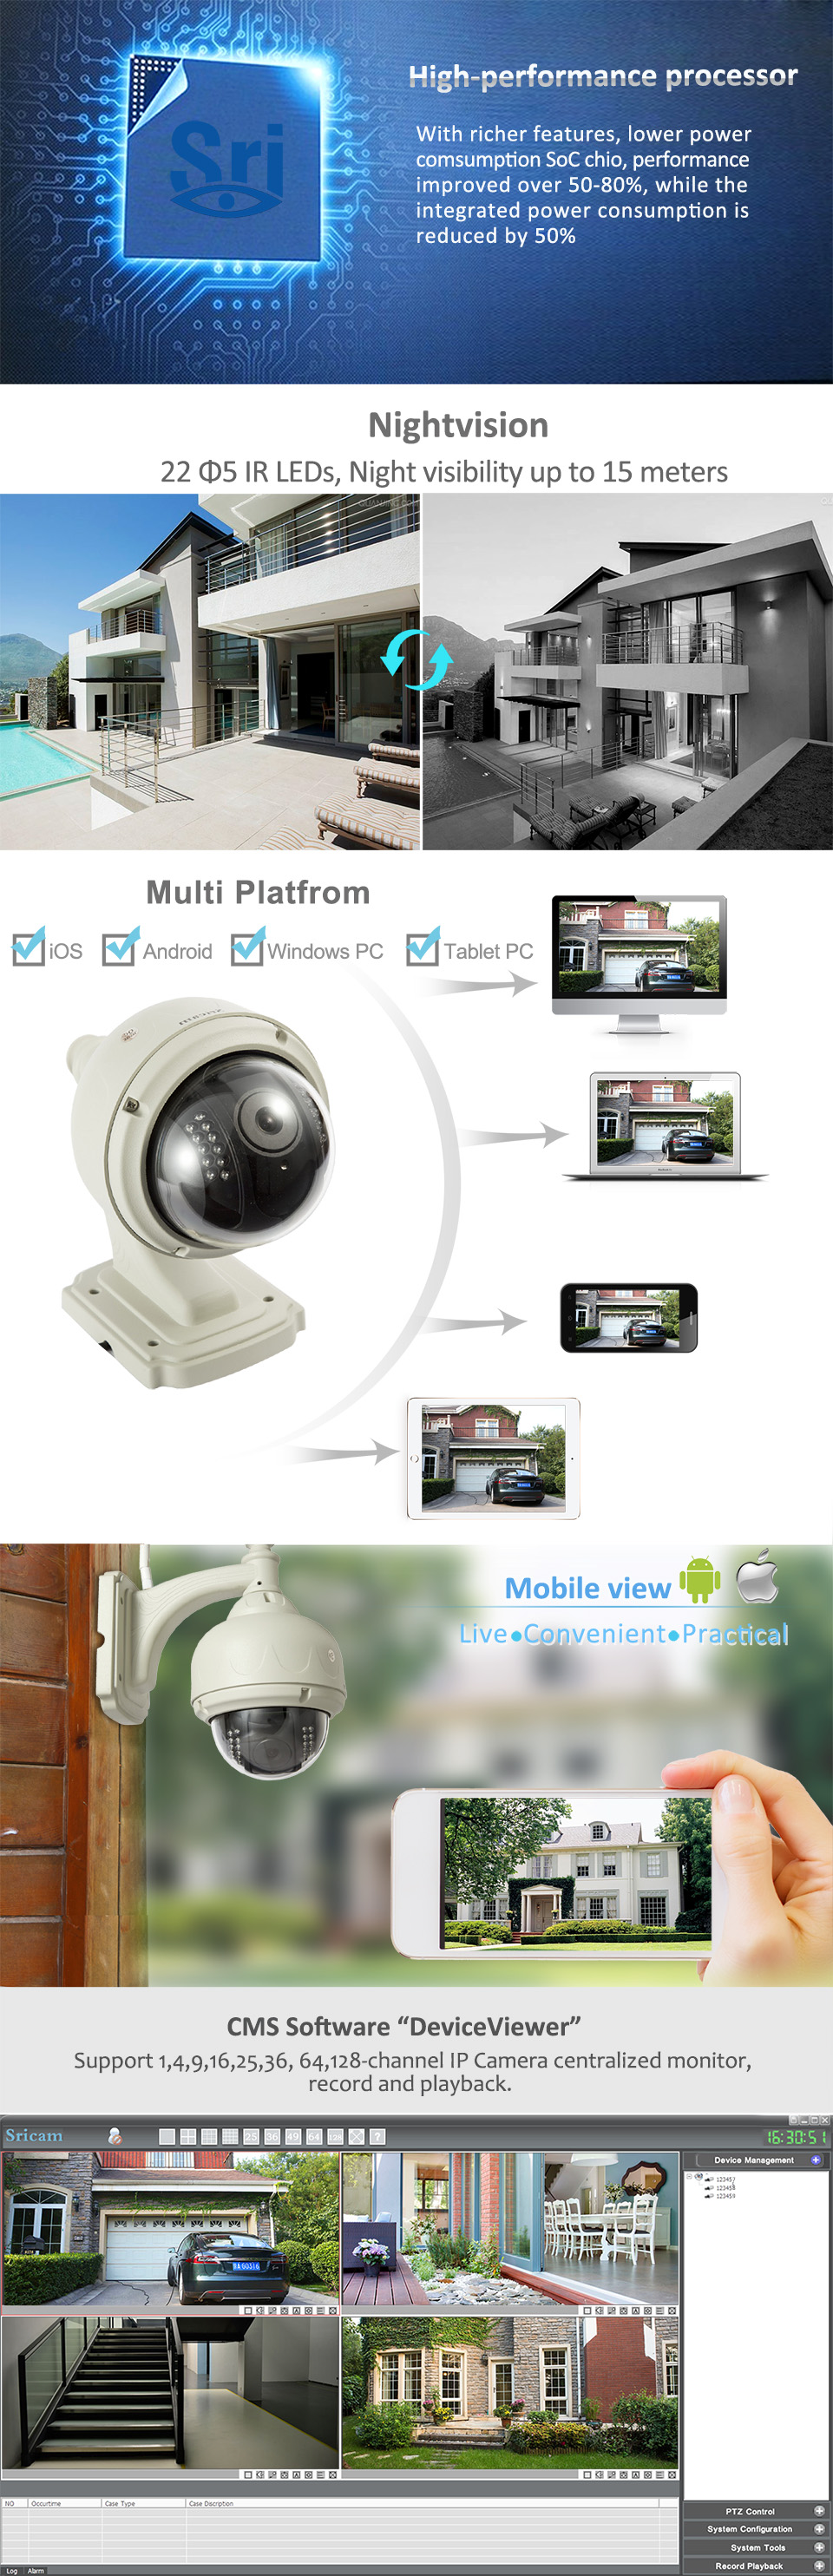 Sricam SP015 Smartphone network wireless p2p outdoor Camera waterproof ip camera outdoor security wireless alarm system